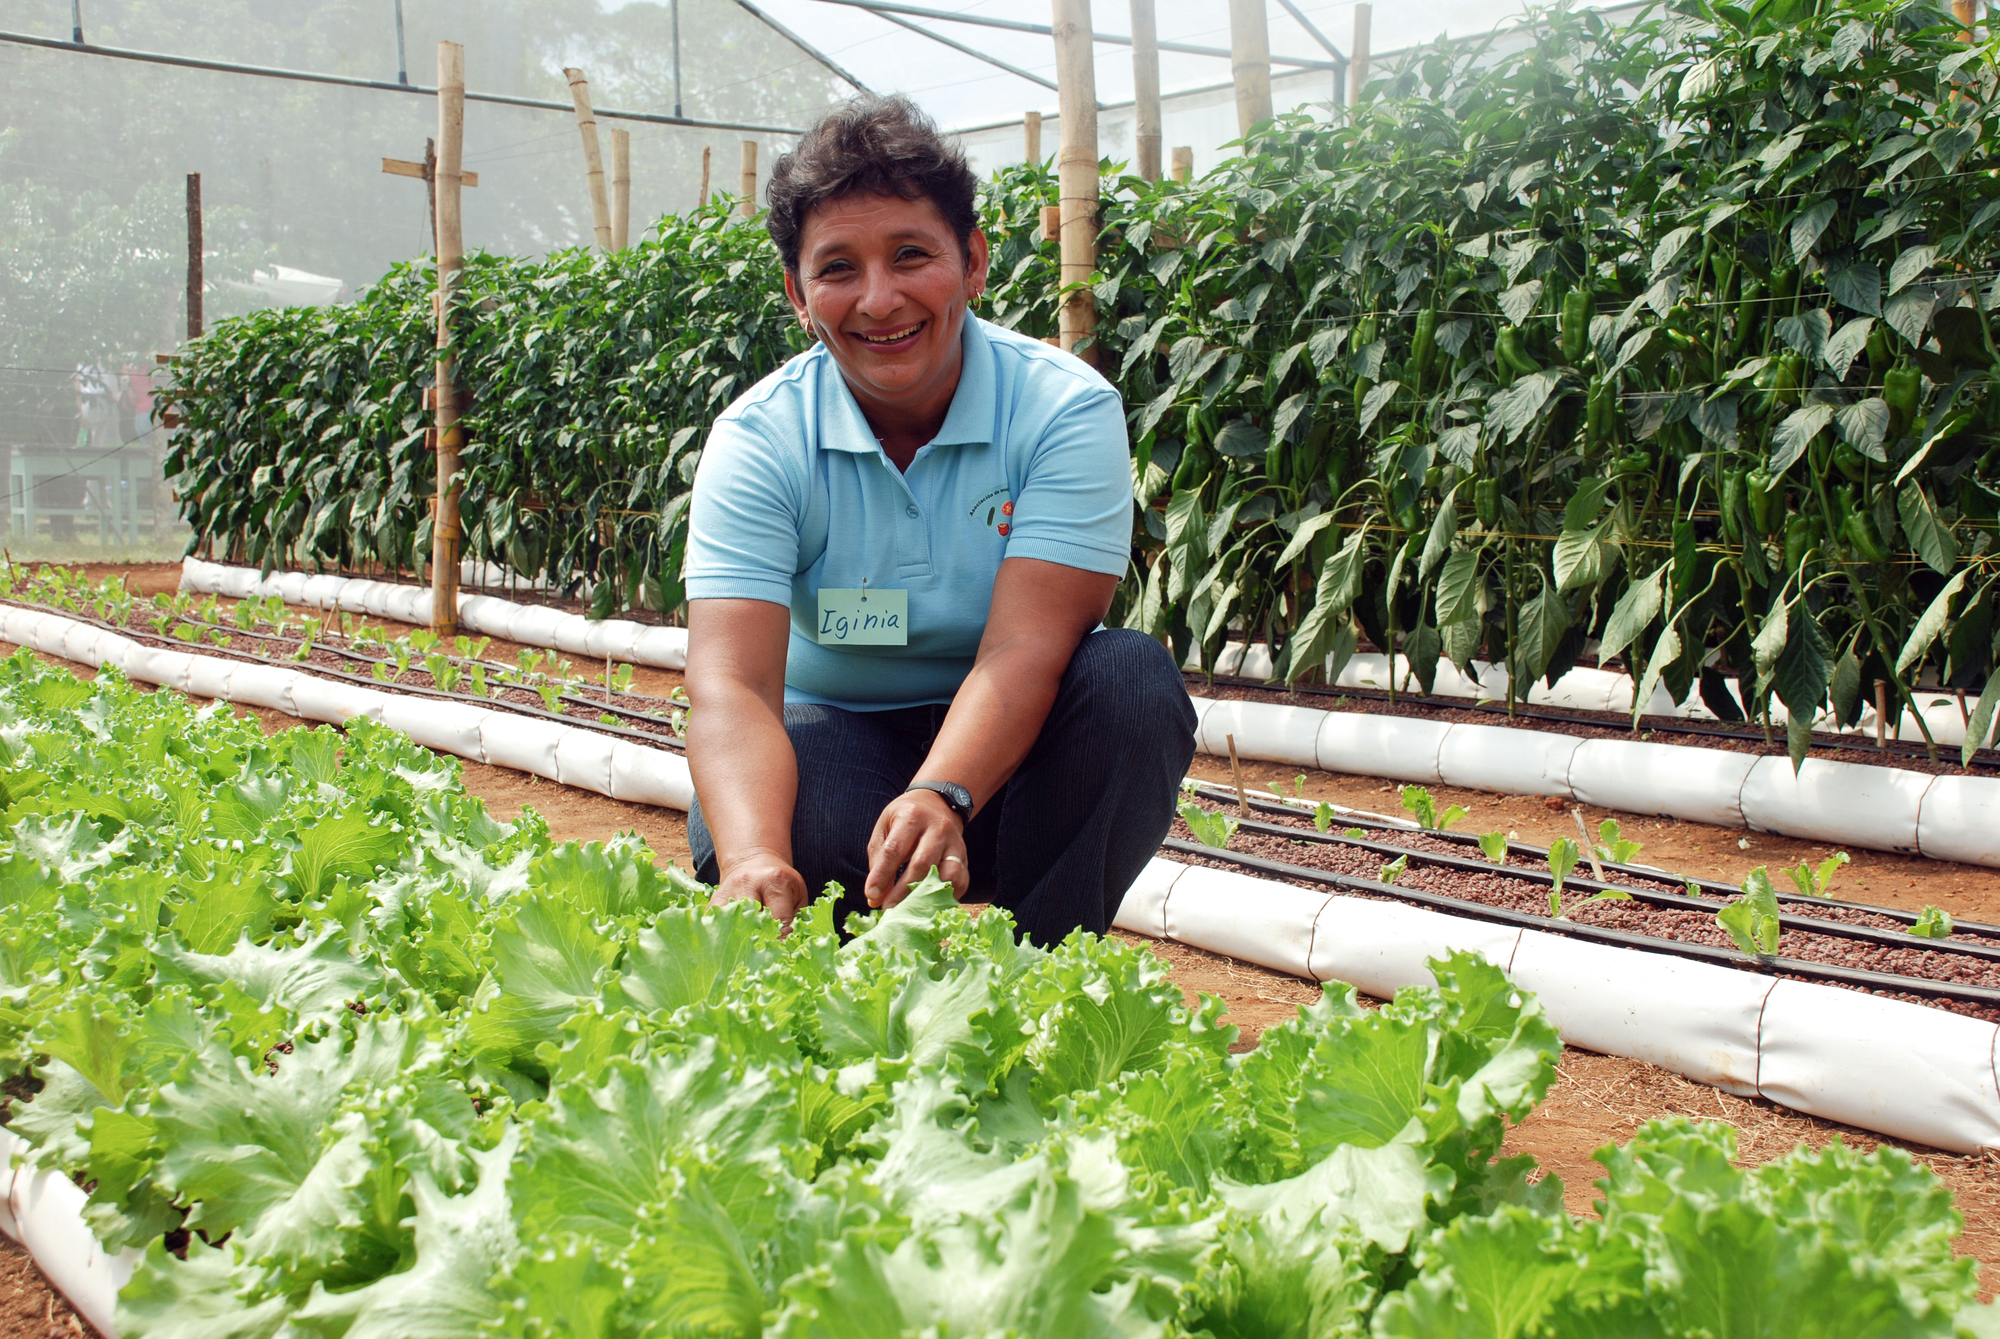 Women showing off her vegetables she grows in her greenhouse in Latin America